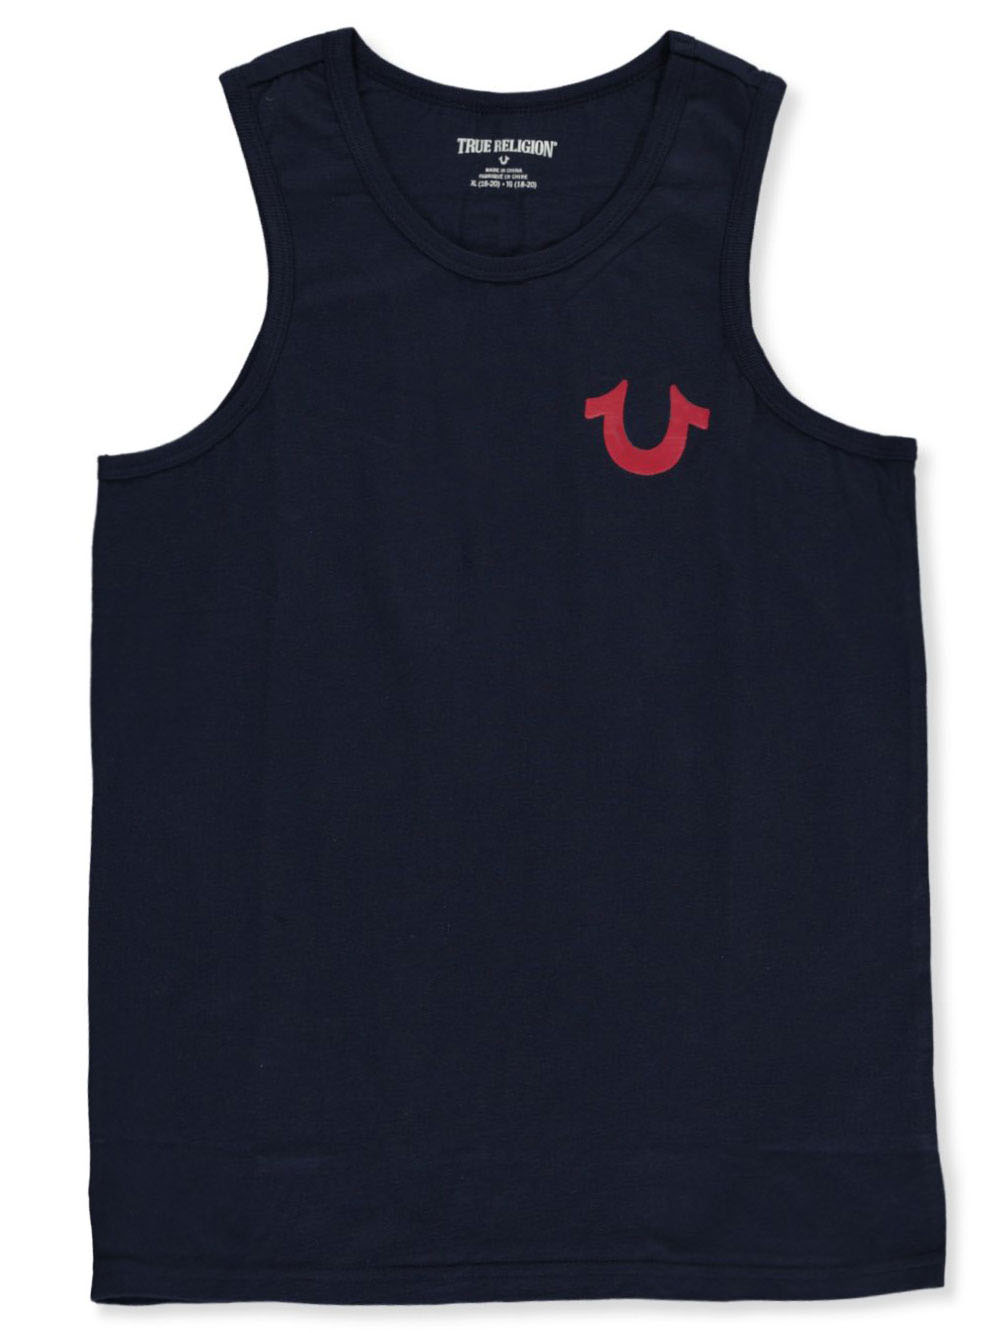 Size 18 Tank for Boys